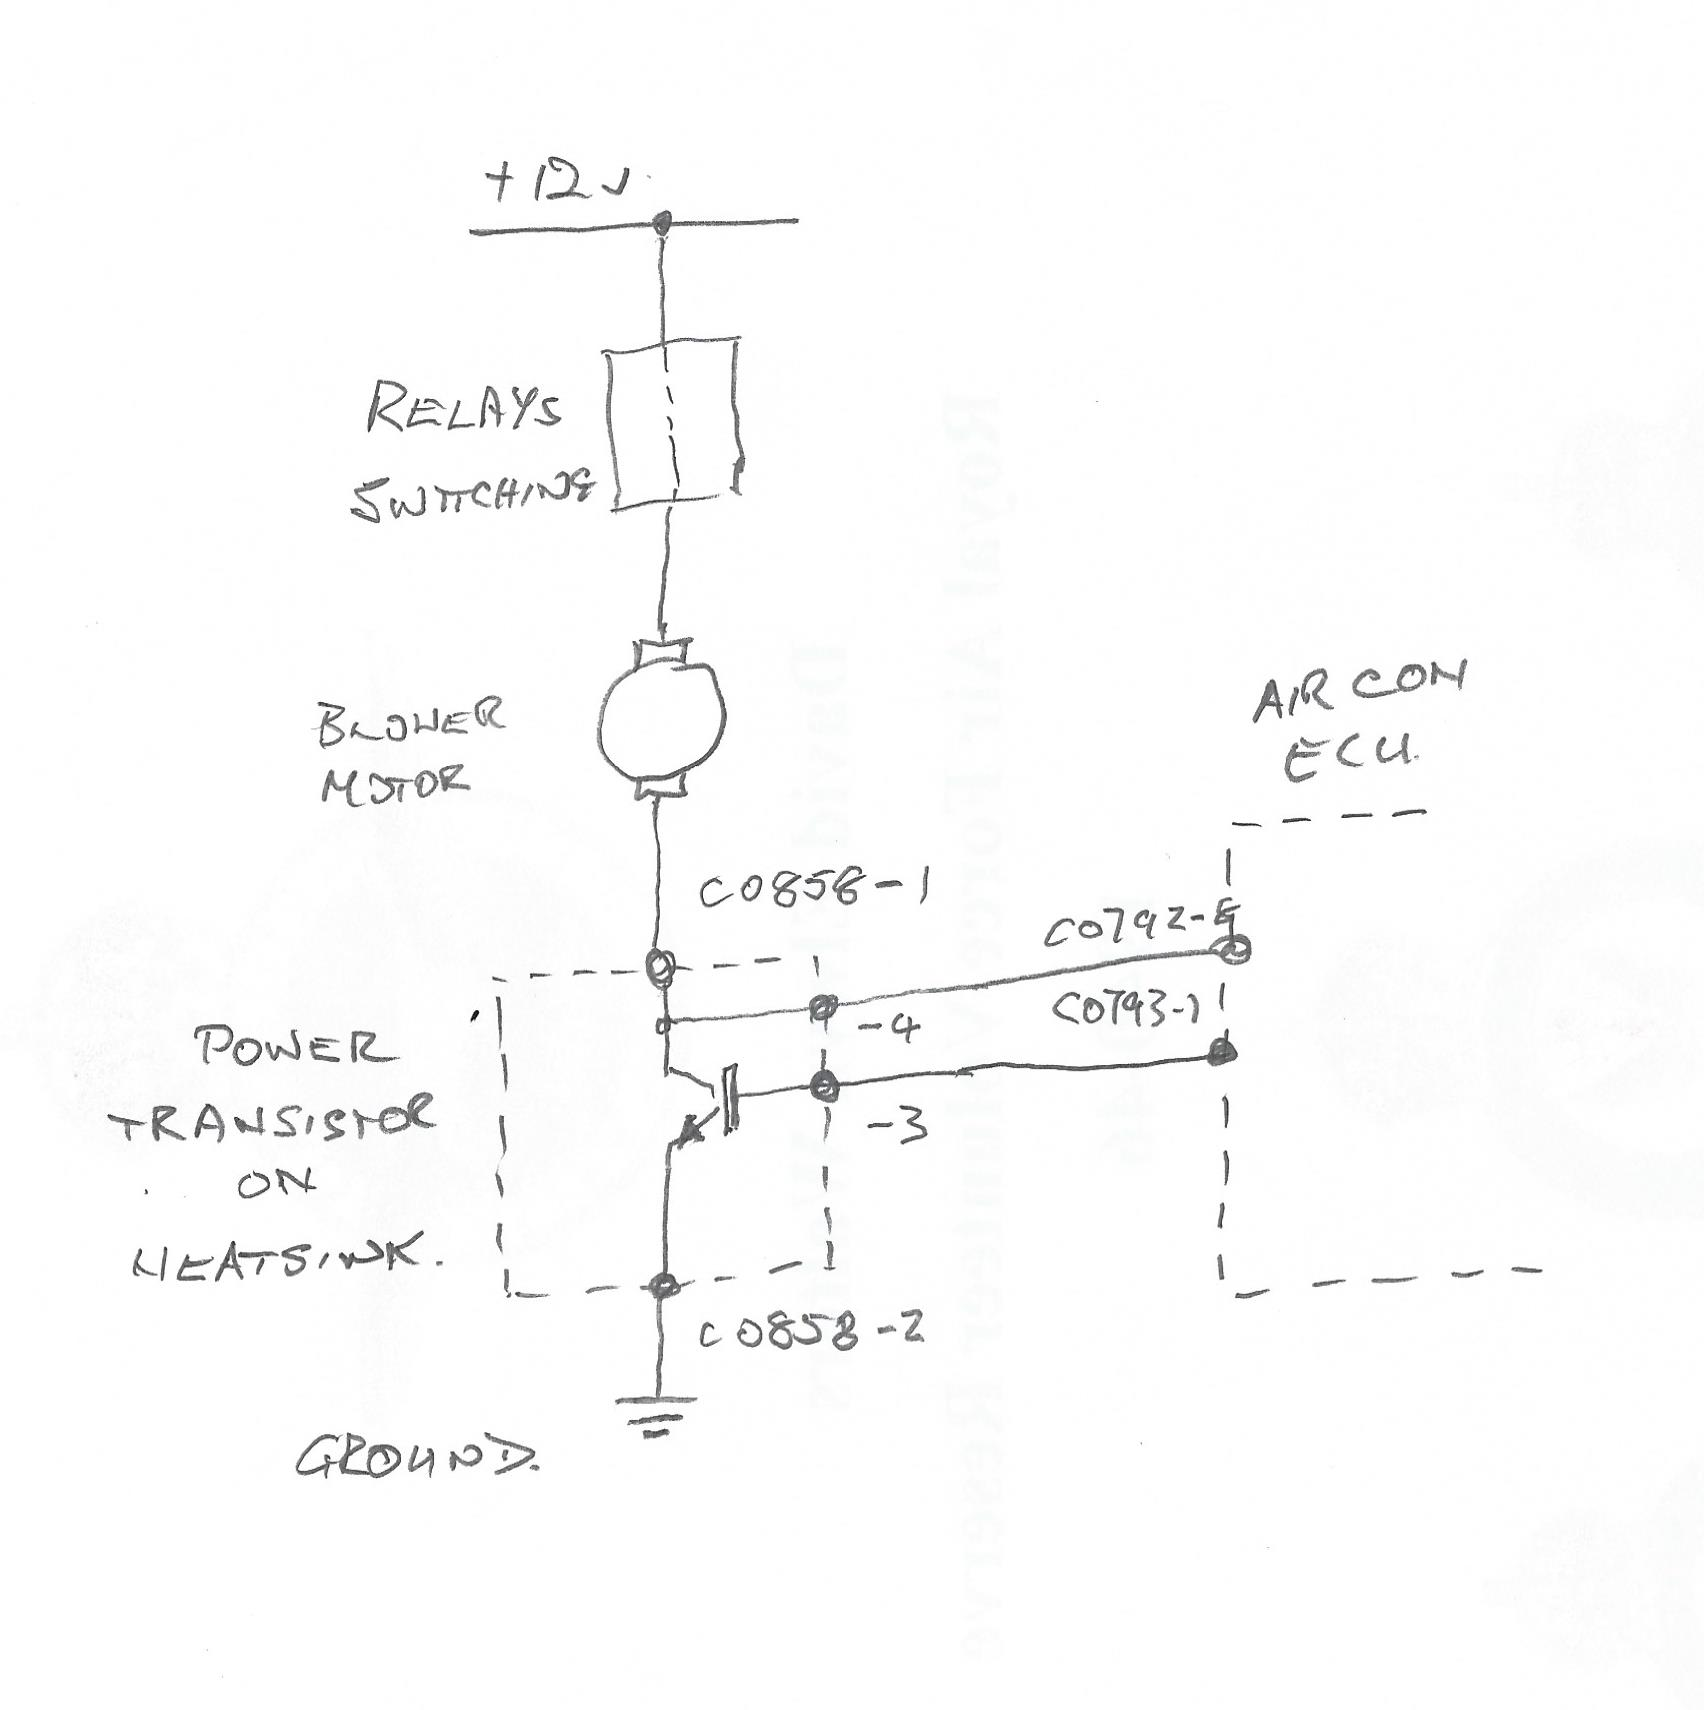 The power transistor is an npn type and can be thought of in this case as a remotely controlled variable resistor in series with the blower motor and